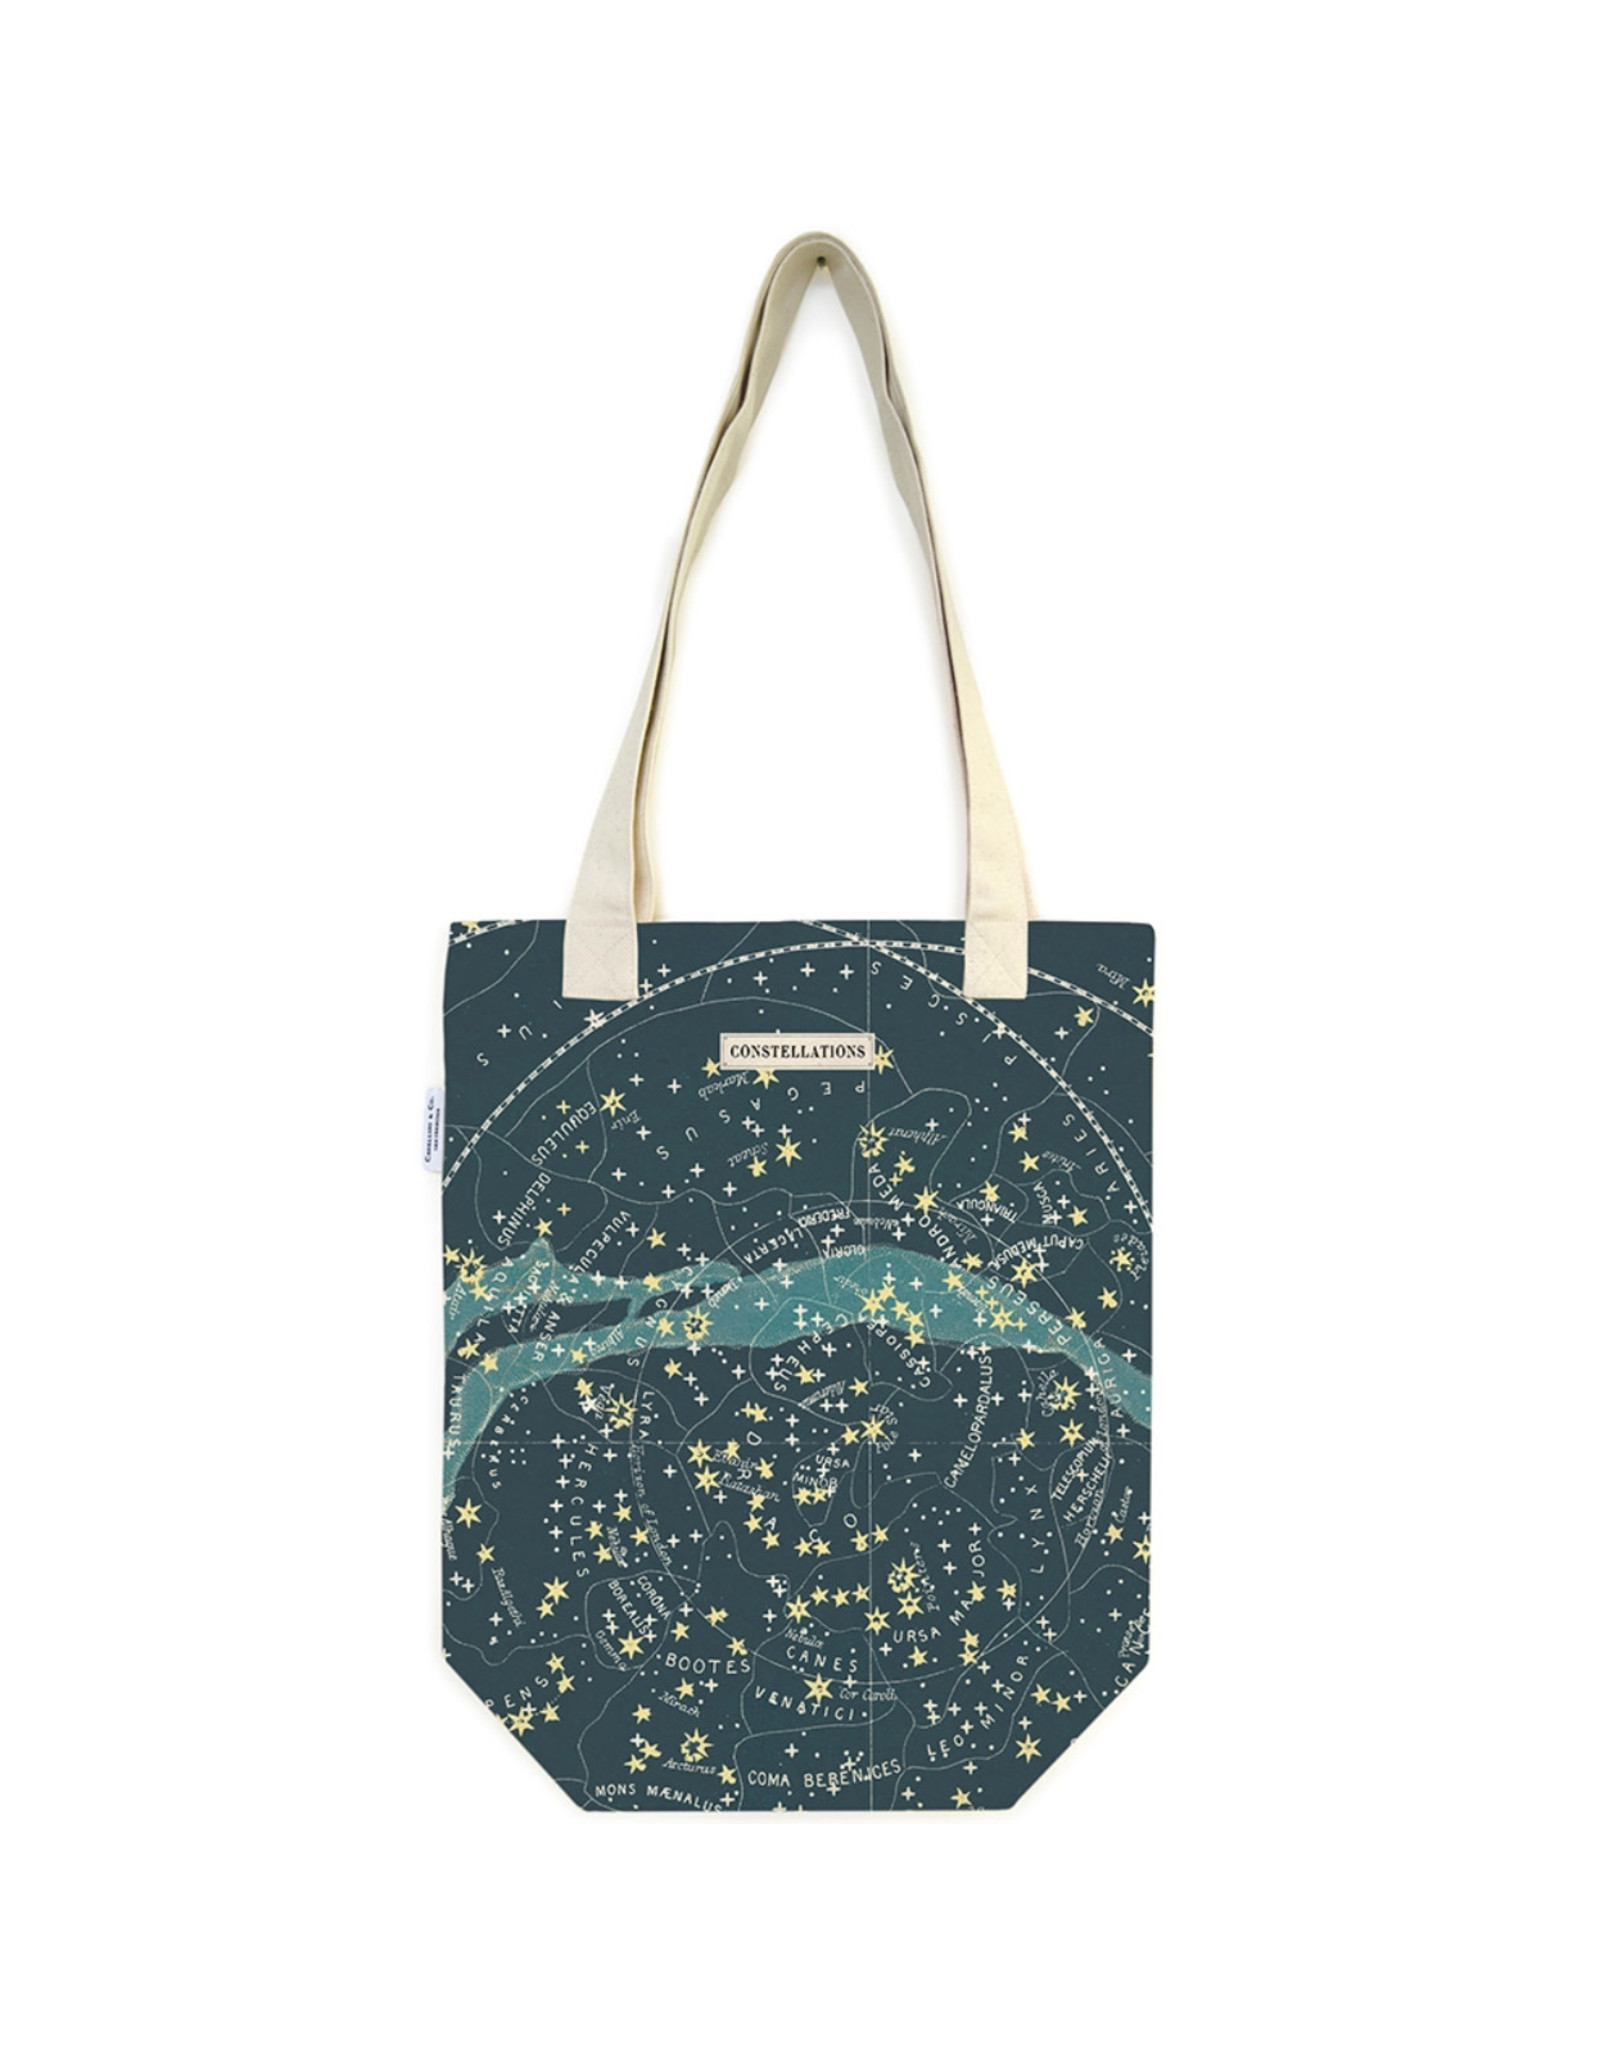 Cavallini Papers & Co. Celestial Tote Bag TB/CELEST